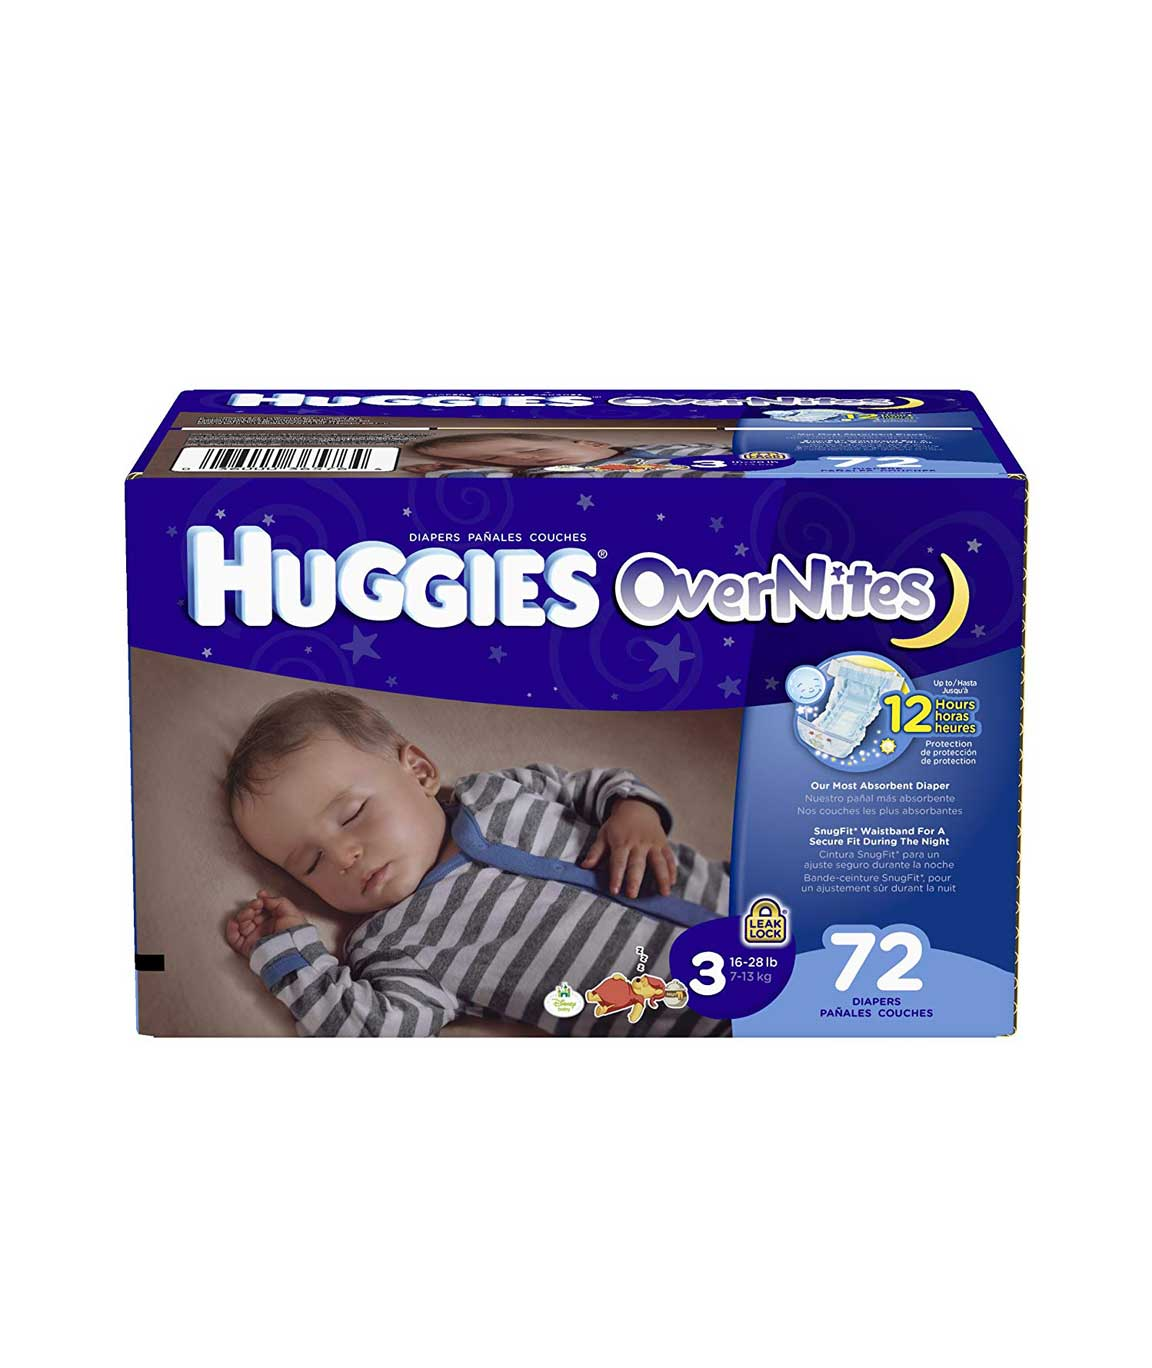 Huggies over Night Diapers, Size 3, Big Pack, 72 Count